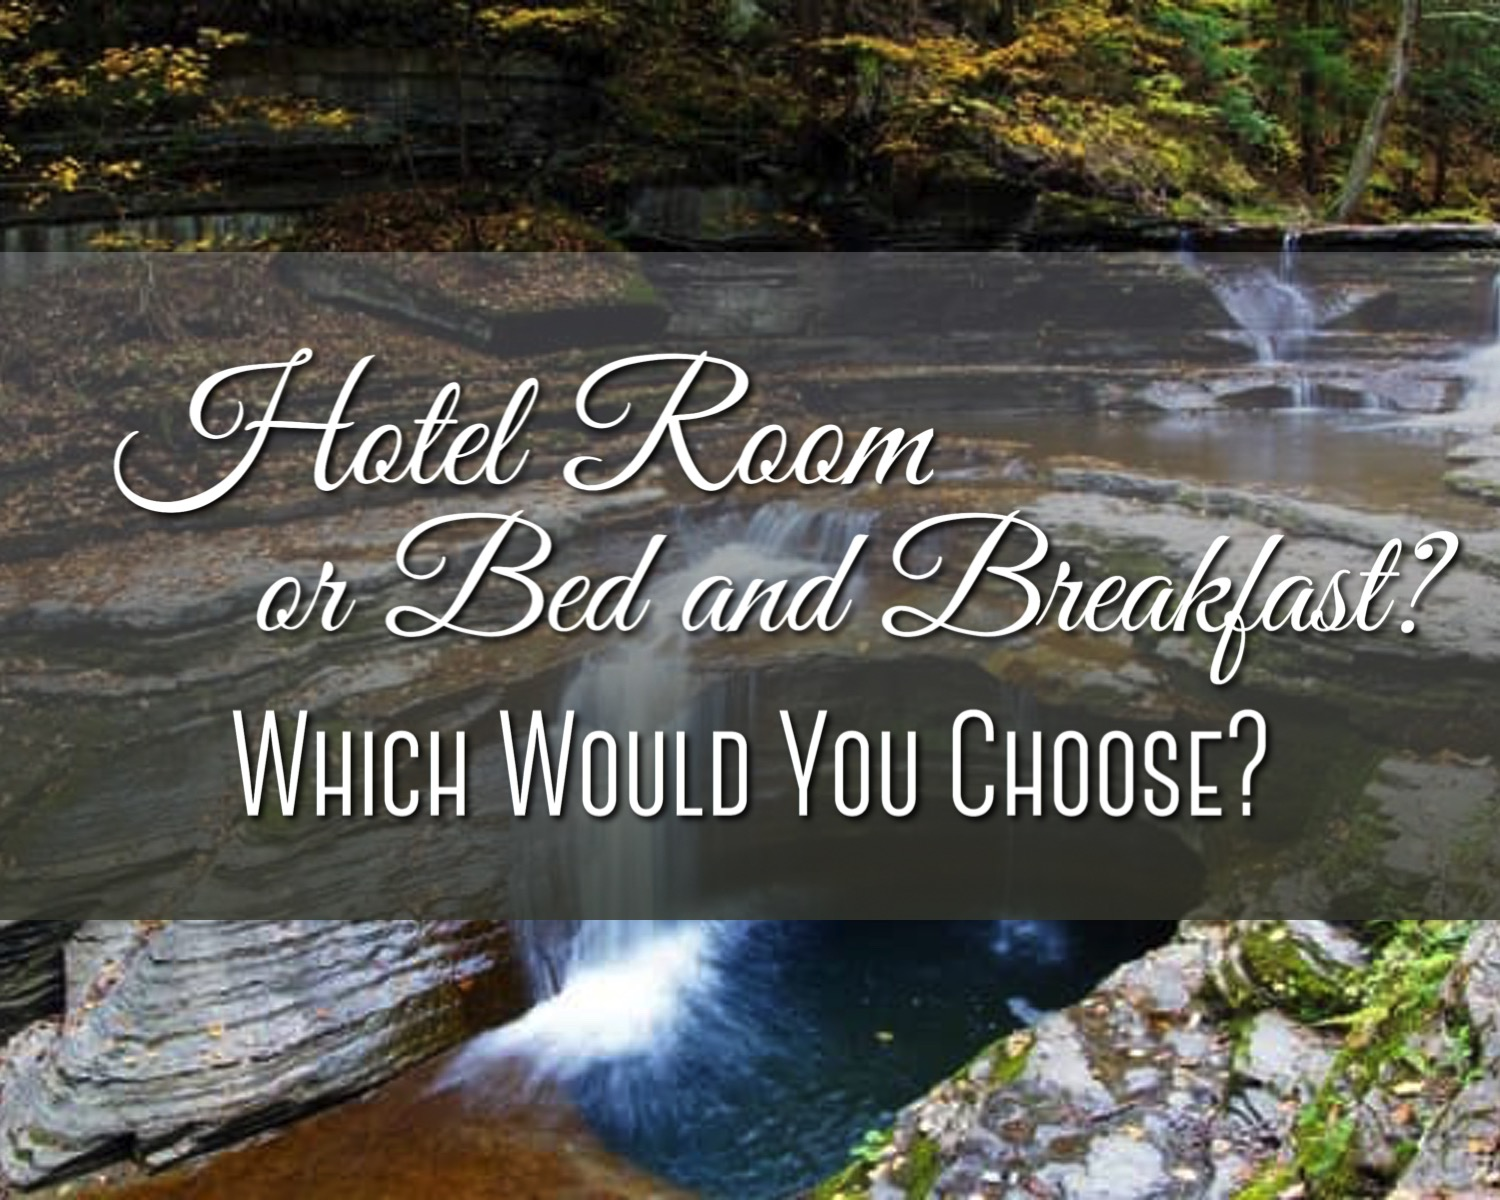 Hotel Room or Bed and Breakfast?.jpg